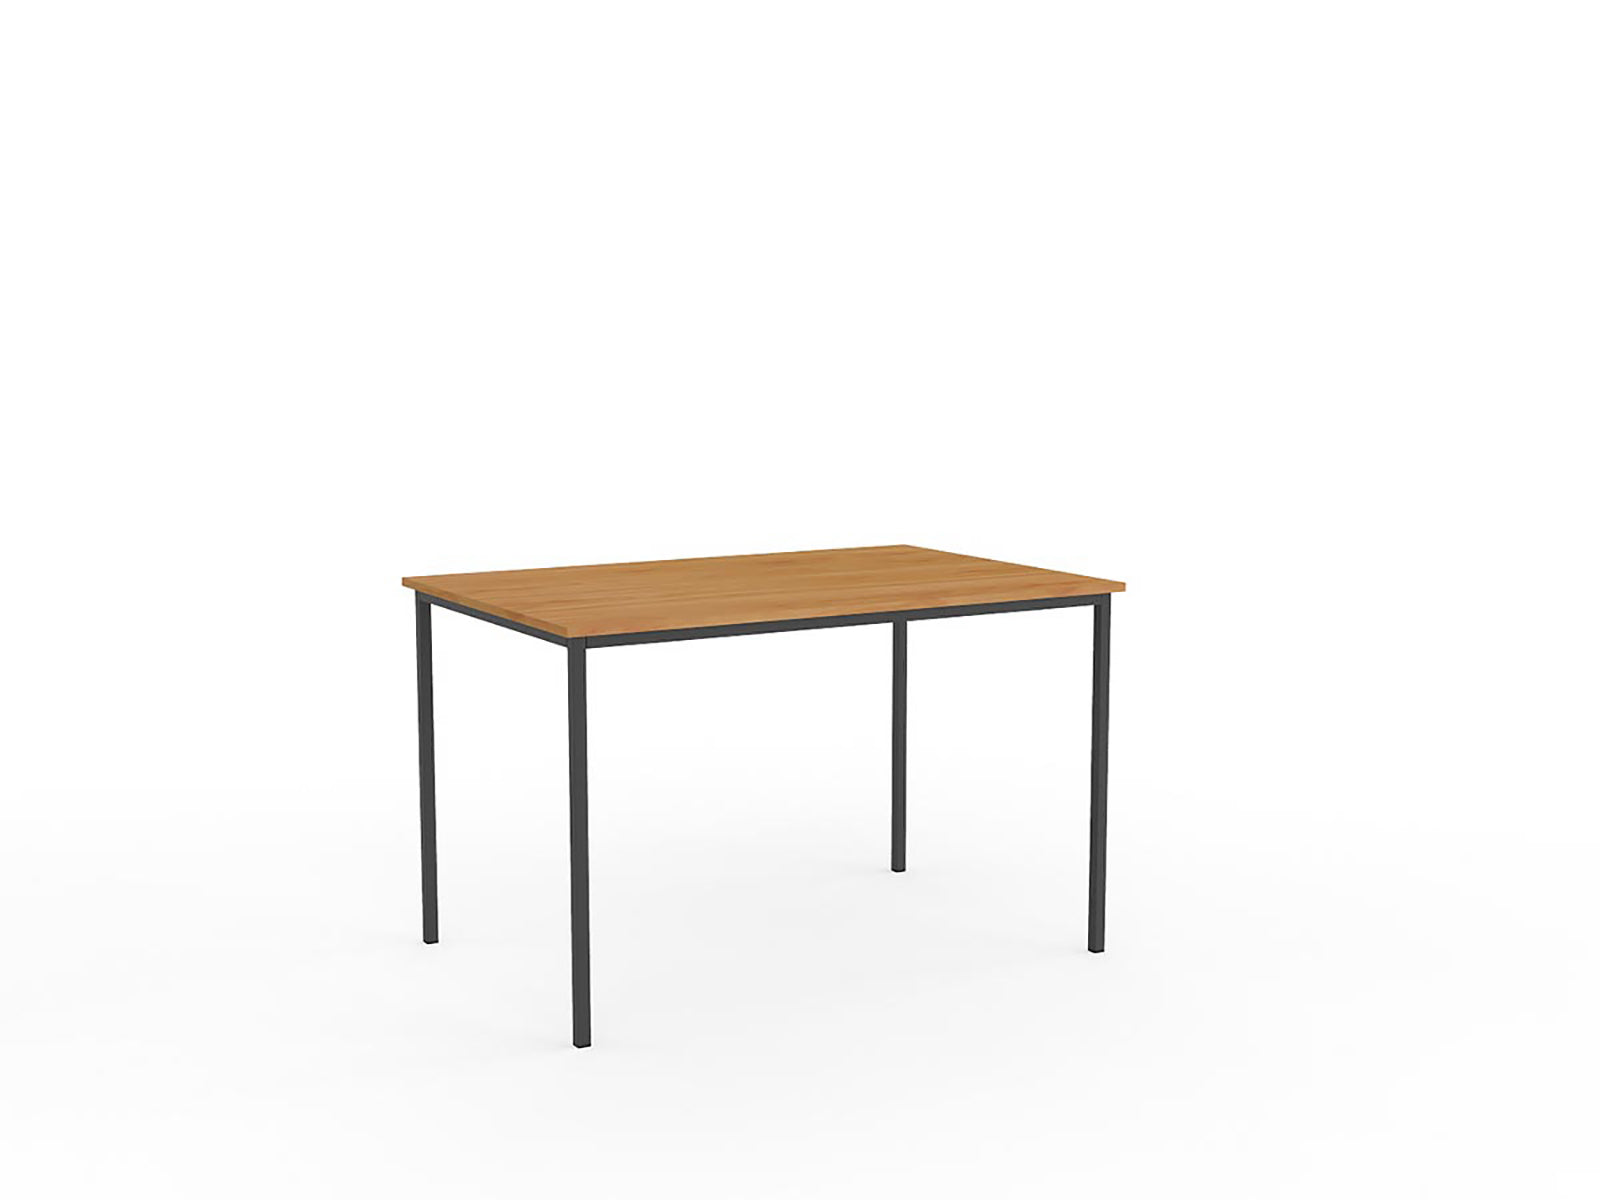 Ergoplan 1.2m Canteen Table - Workspace Furniture Home and Office Cafe Tables